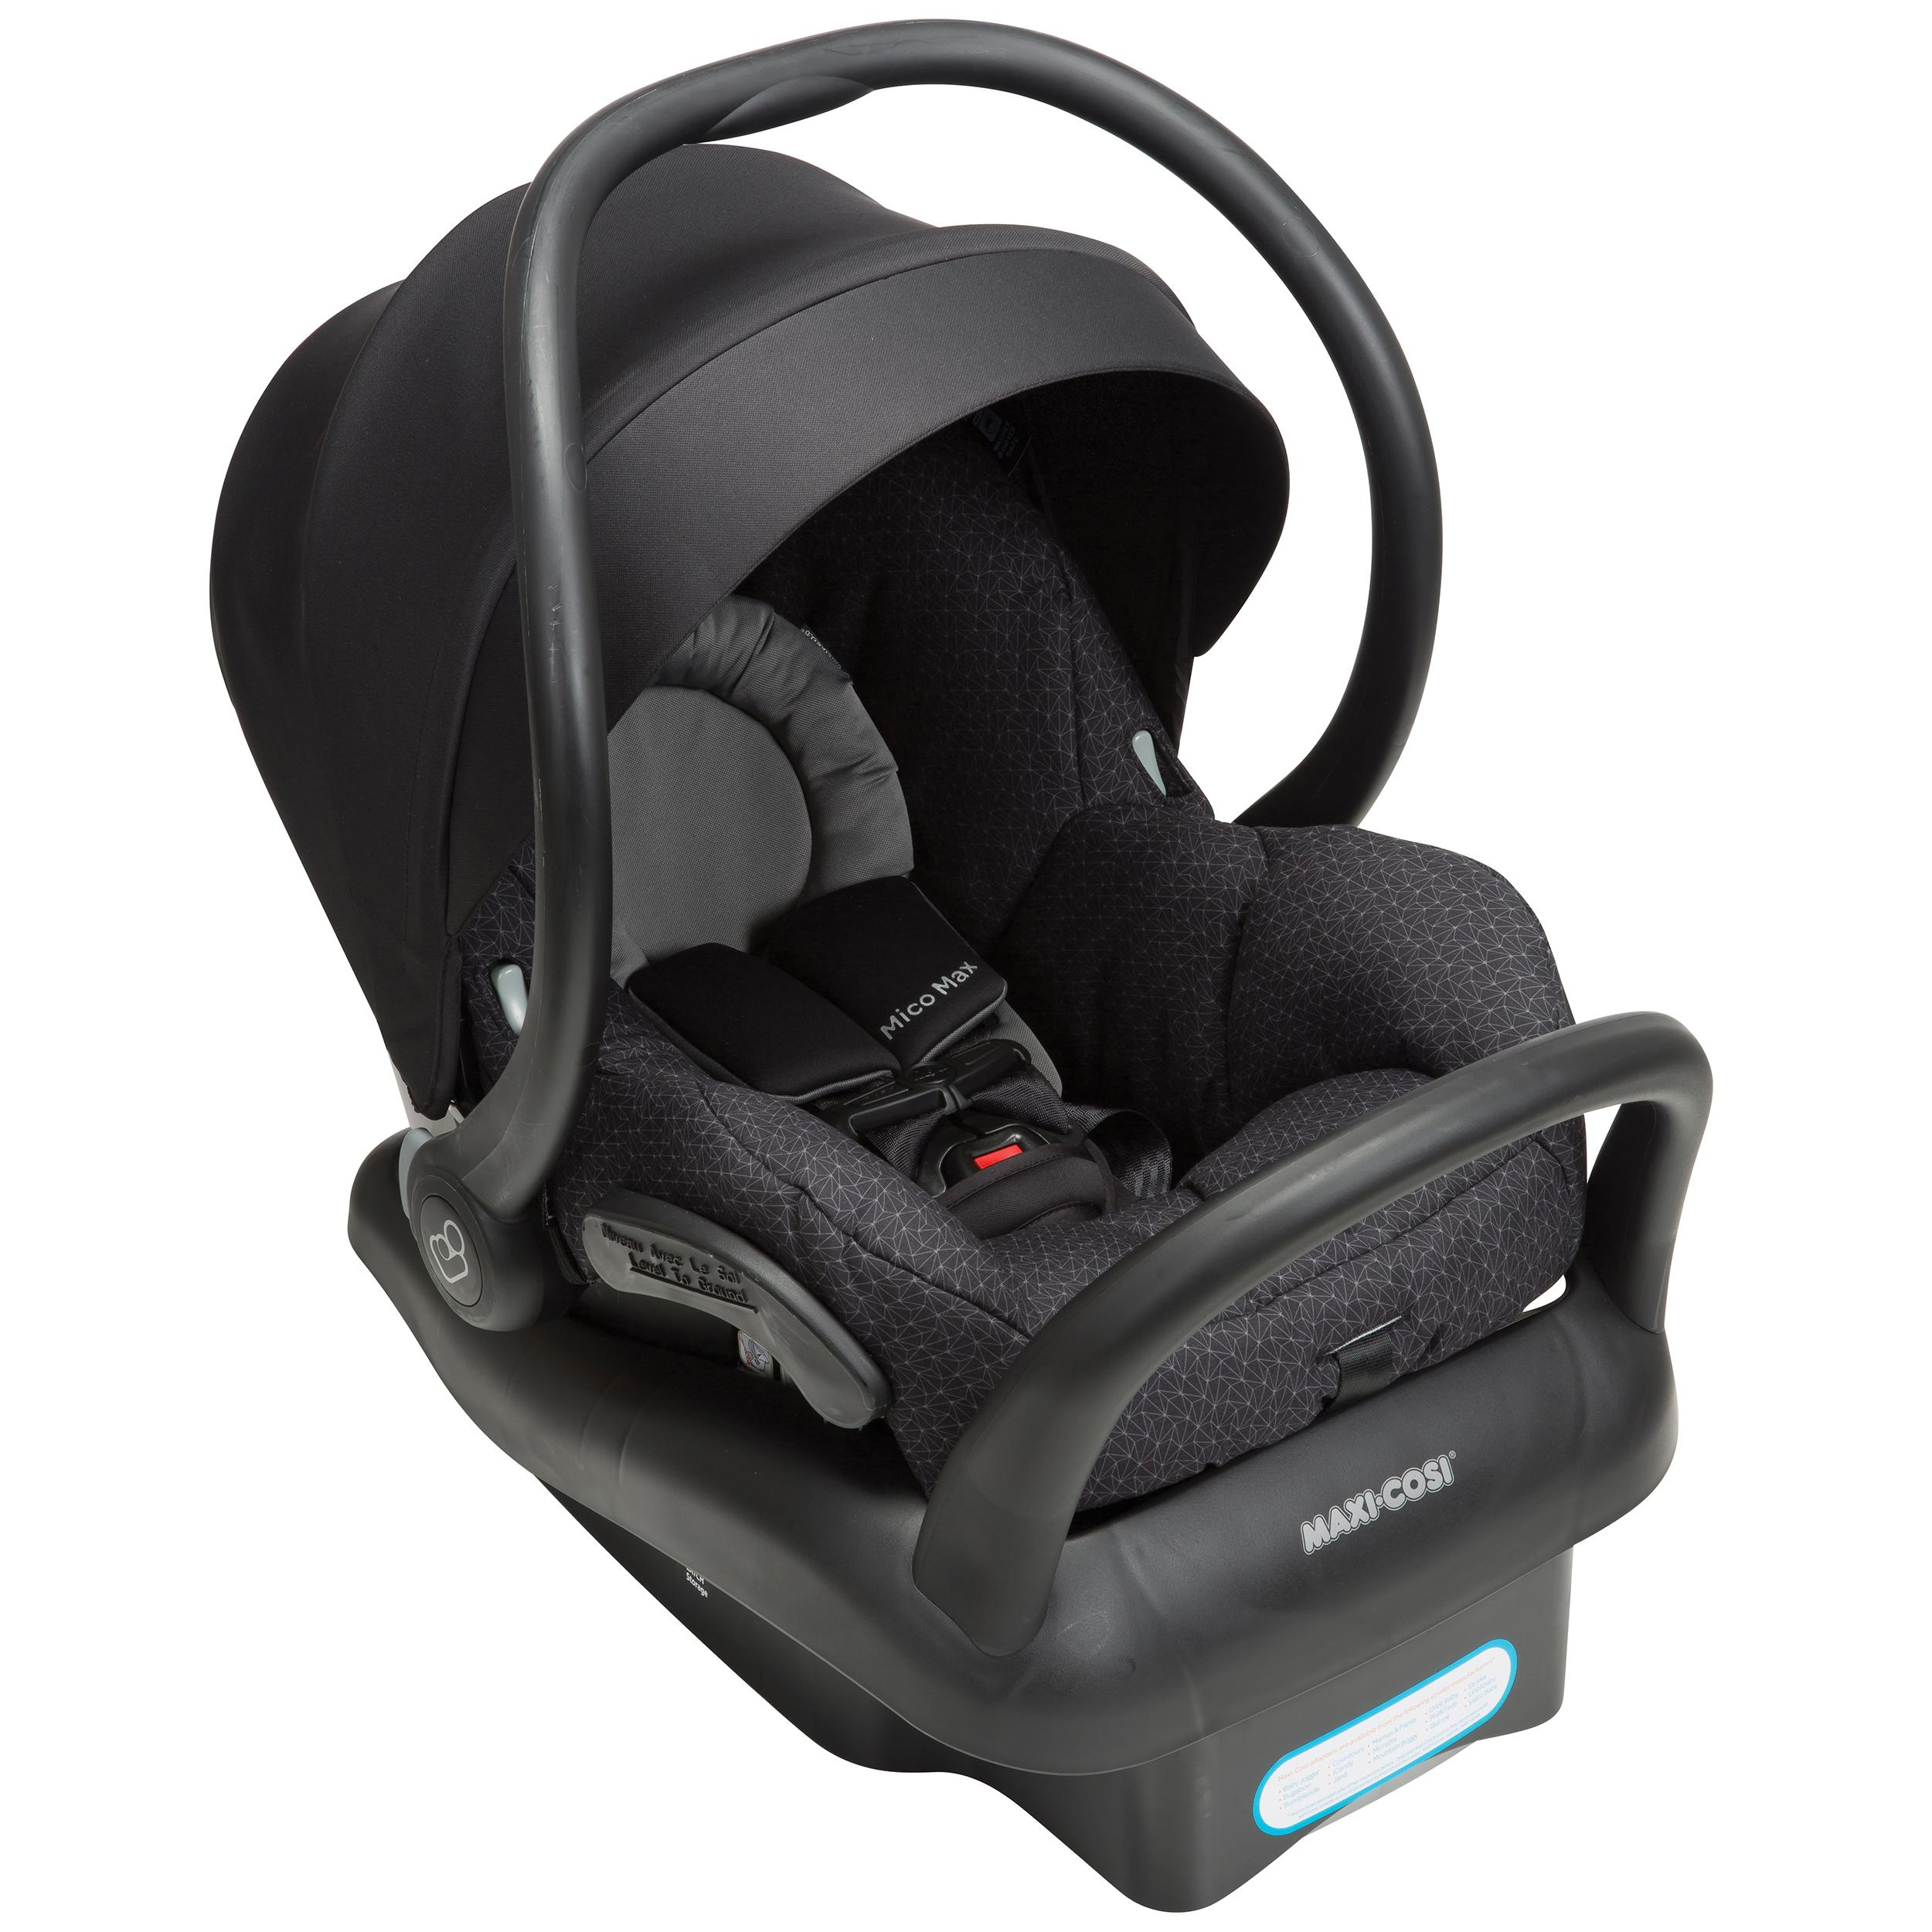 Safest Infant Car Seat 2018